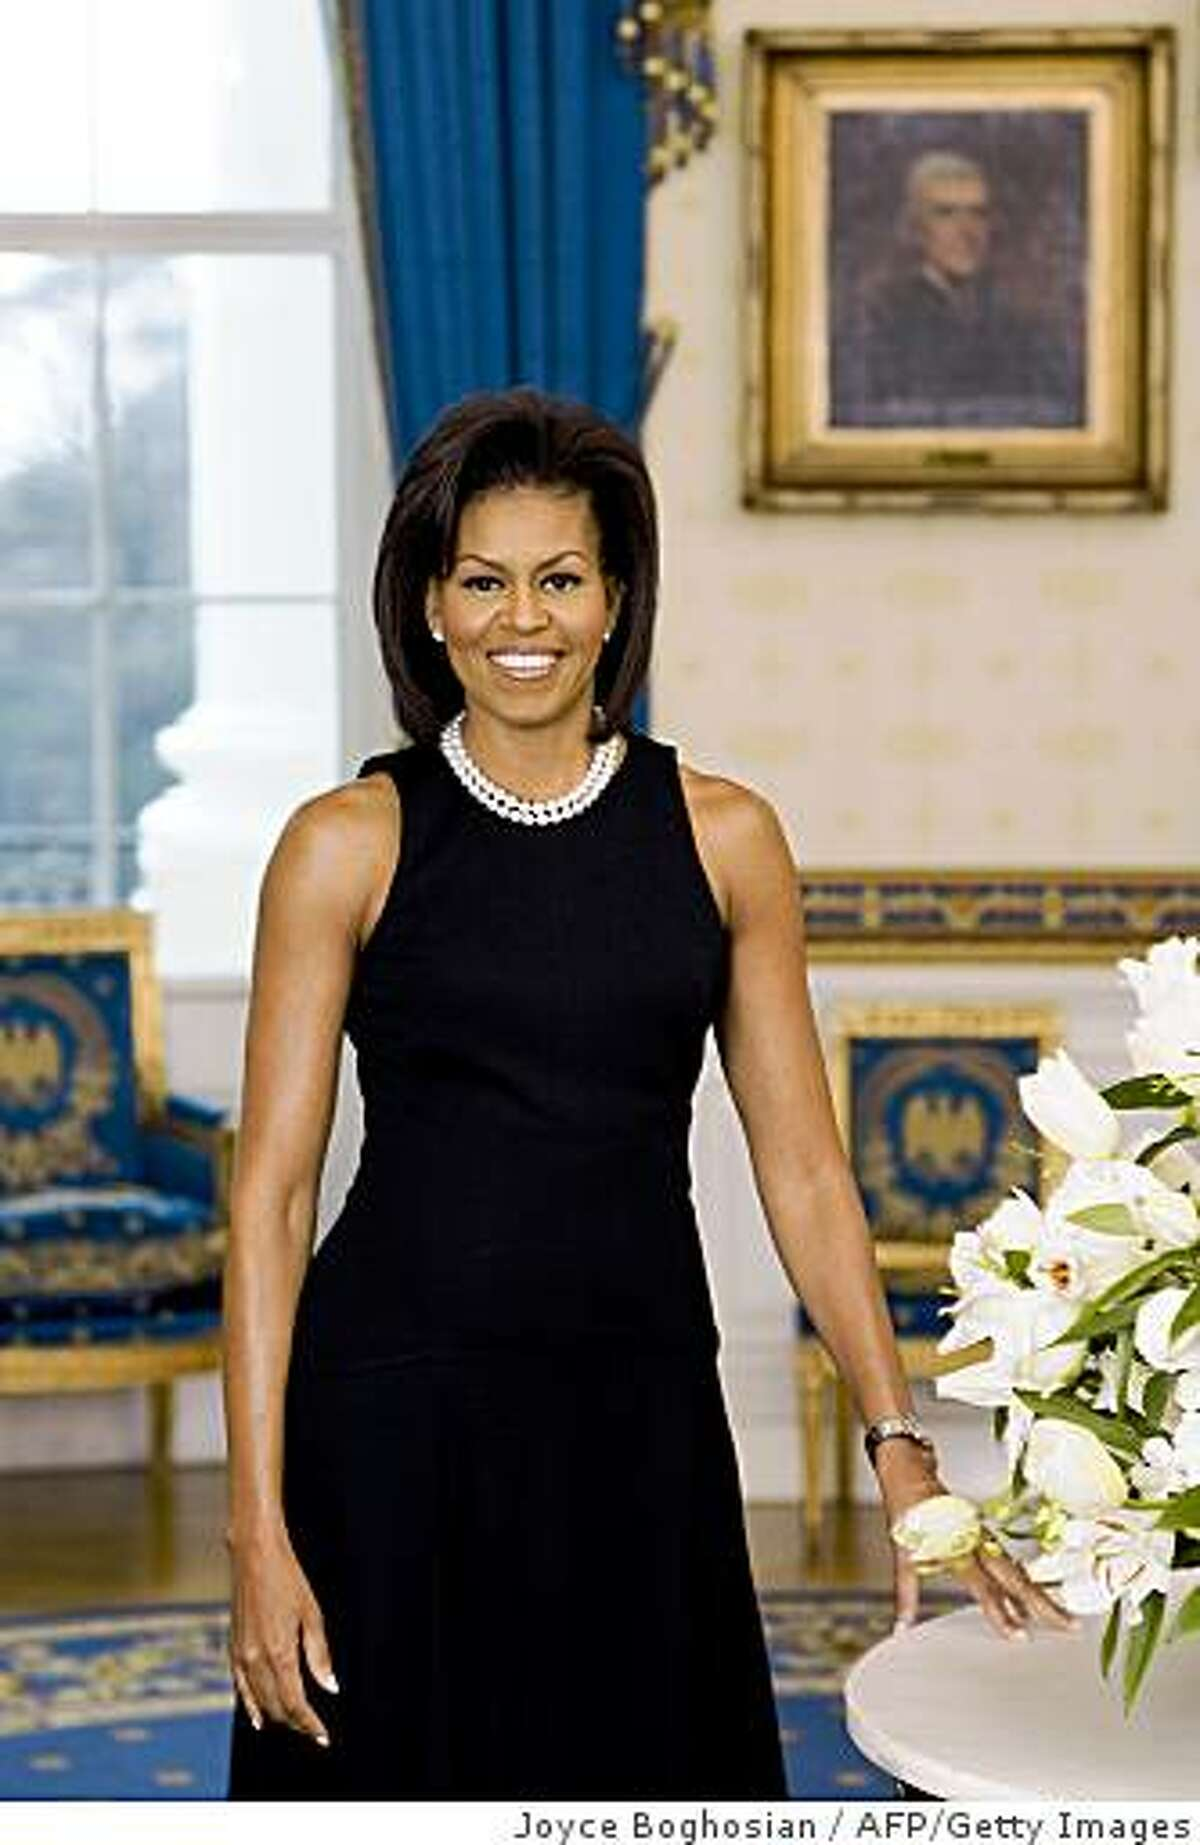 TO GO WITH AFP STORY BY VIRGINIE MONTET(FILES) Filed handout image released on Feberuary 27, 2009 by the White House in Washington, DC, shows First Lady Michelle Obama in her official portrait. The portrait shows Mrs. Obama standing in the Blue Room in a black sleeveless dress with a double strand of pearls. If one woman symbolizes International Women's Day for Americans, and black American women in particular, it's Michelle Obama, the successful career-woman and mother of two who six weeks ago became First Lady, March 6, 2009 AFP reported.AFP PHOTO/HO/THE WHITE HOUSE = RESTRICTED TO EDITORIAL USE = GETTY OUT = (Photo credit should read JOYCE BOGHOSIAN/AFP/Getty Images)